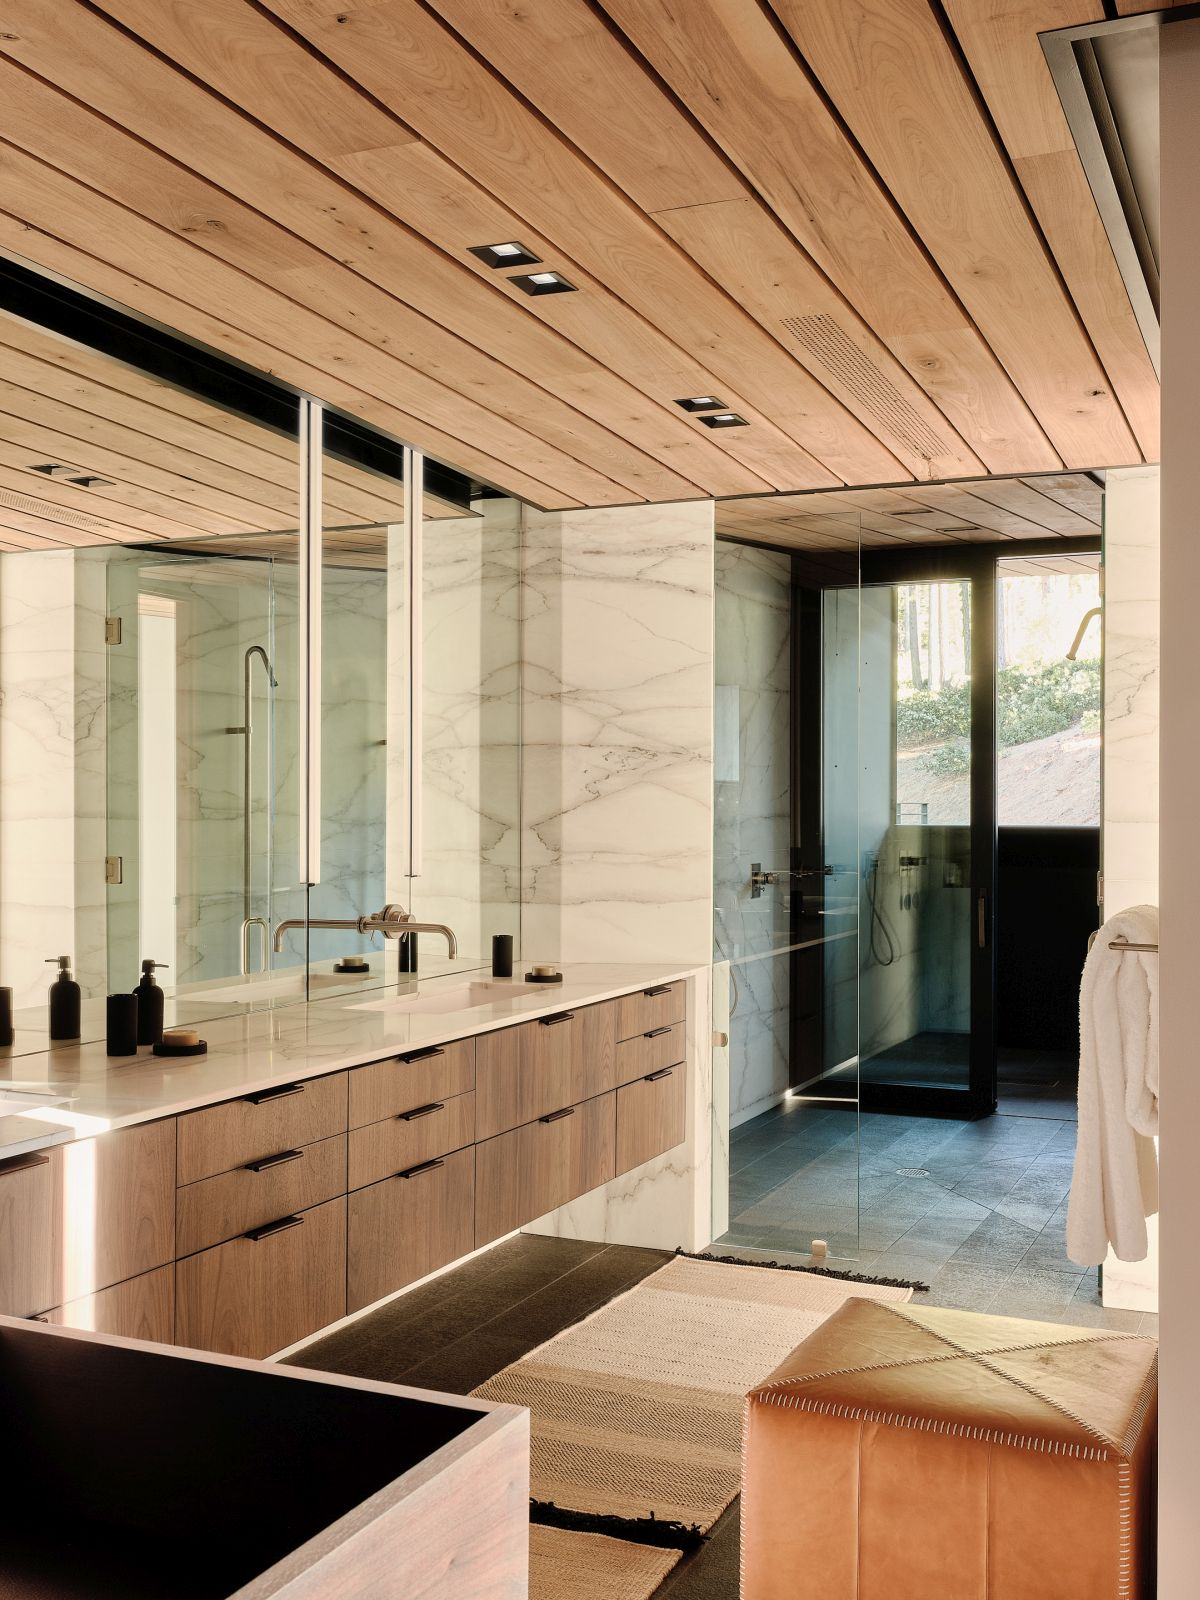 A combination of wood, marble and glass turns the bathroom into a soothing and welcoming space